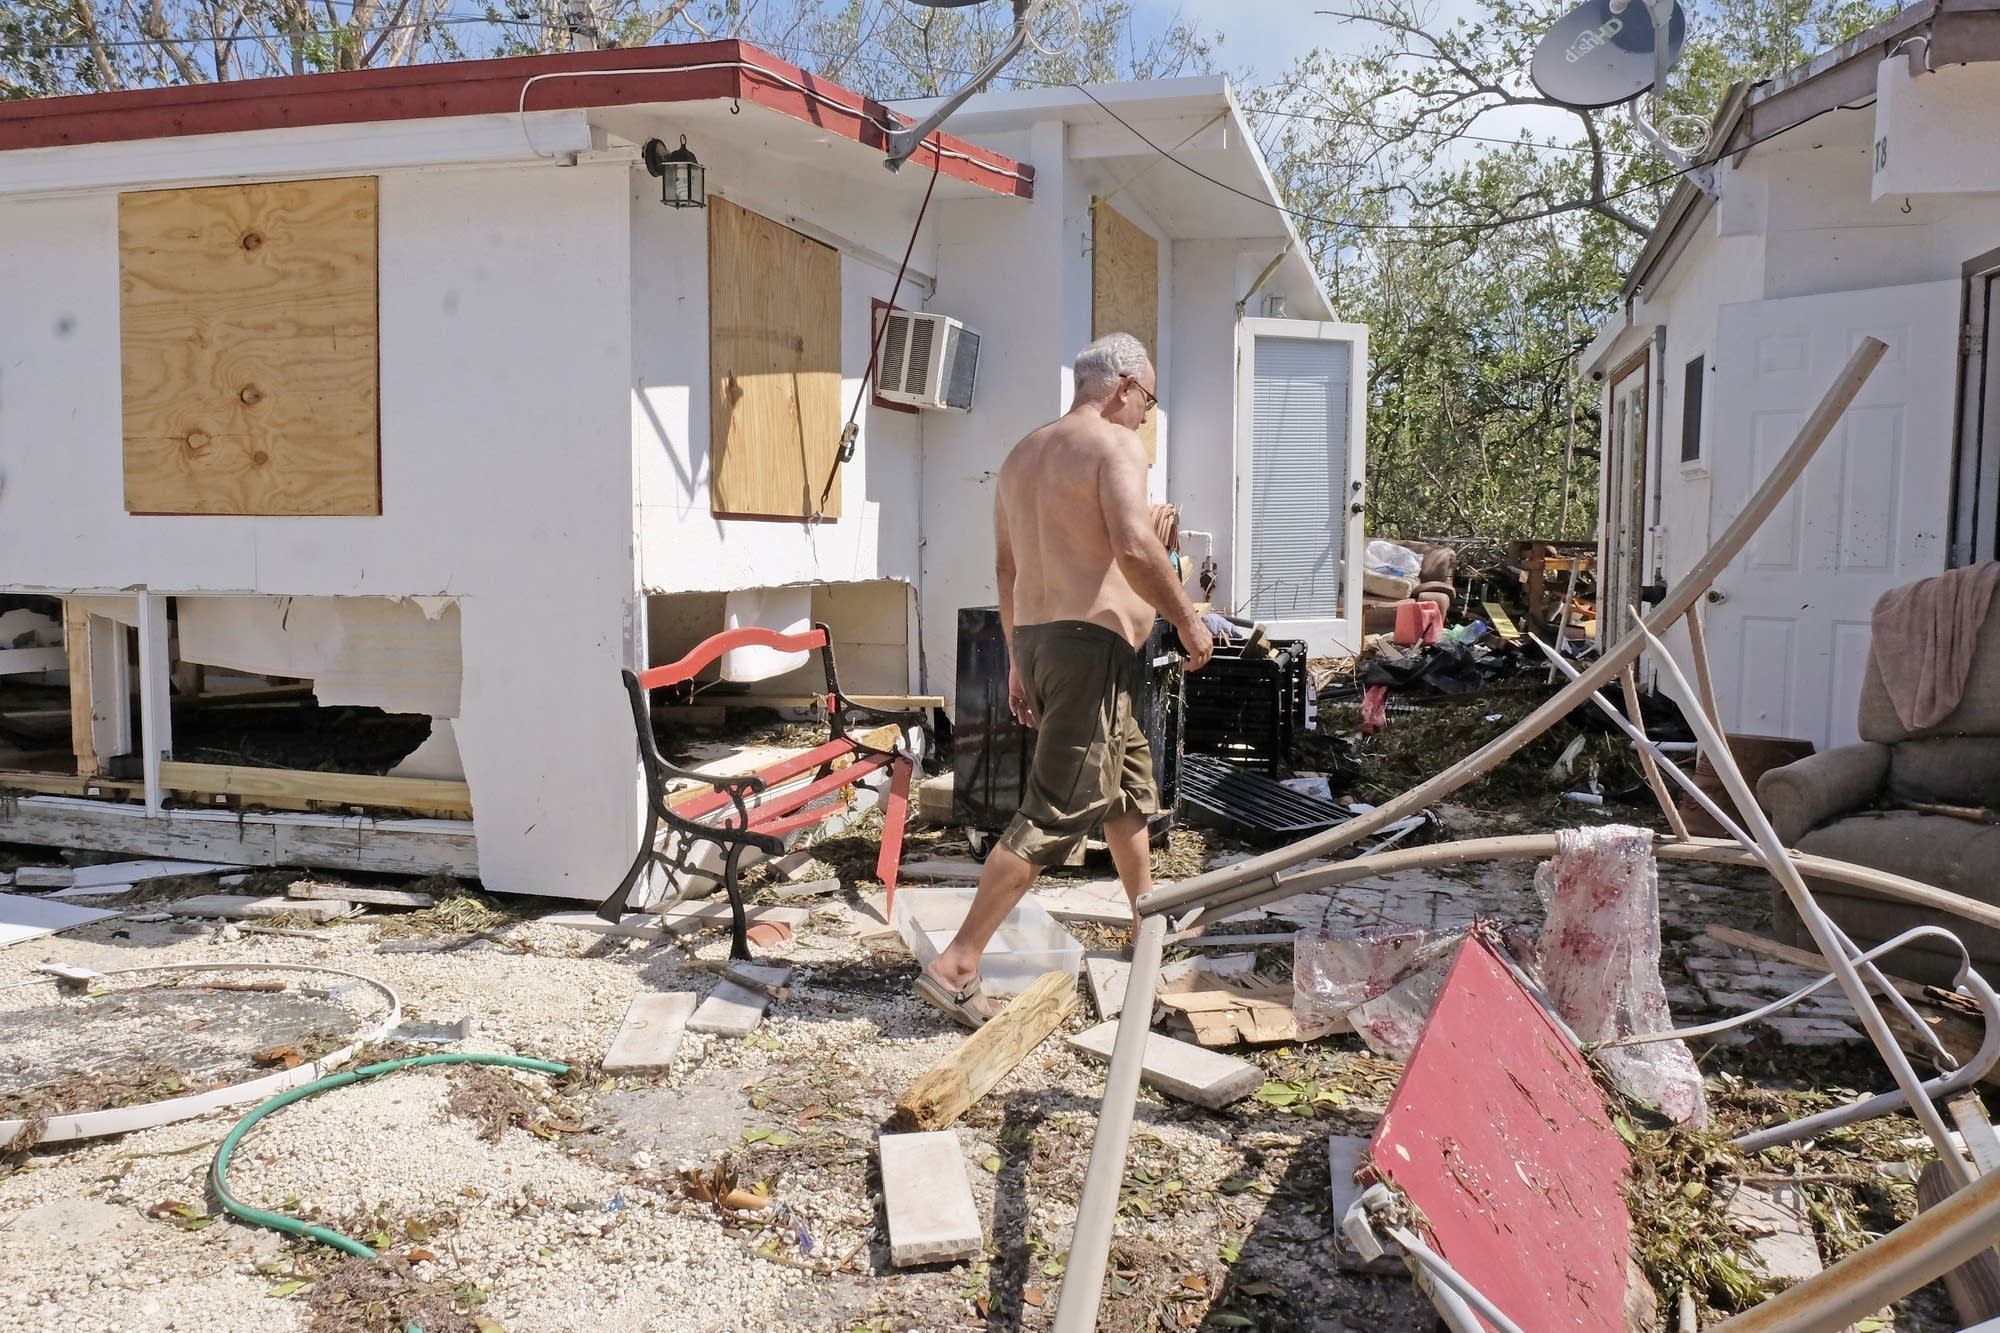 Gullermo Tejera, walks among the damage to his mobile home.